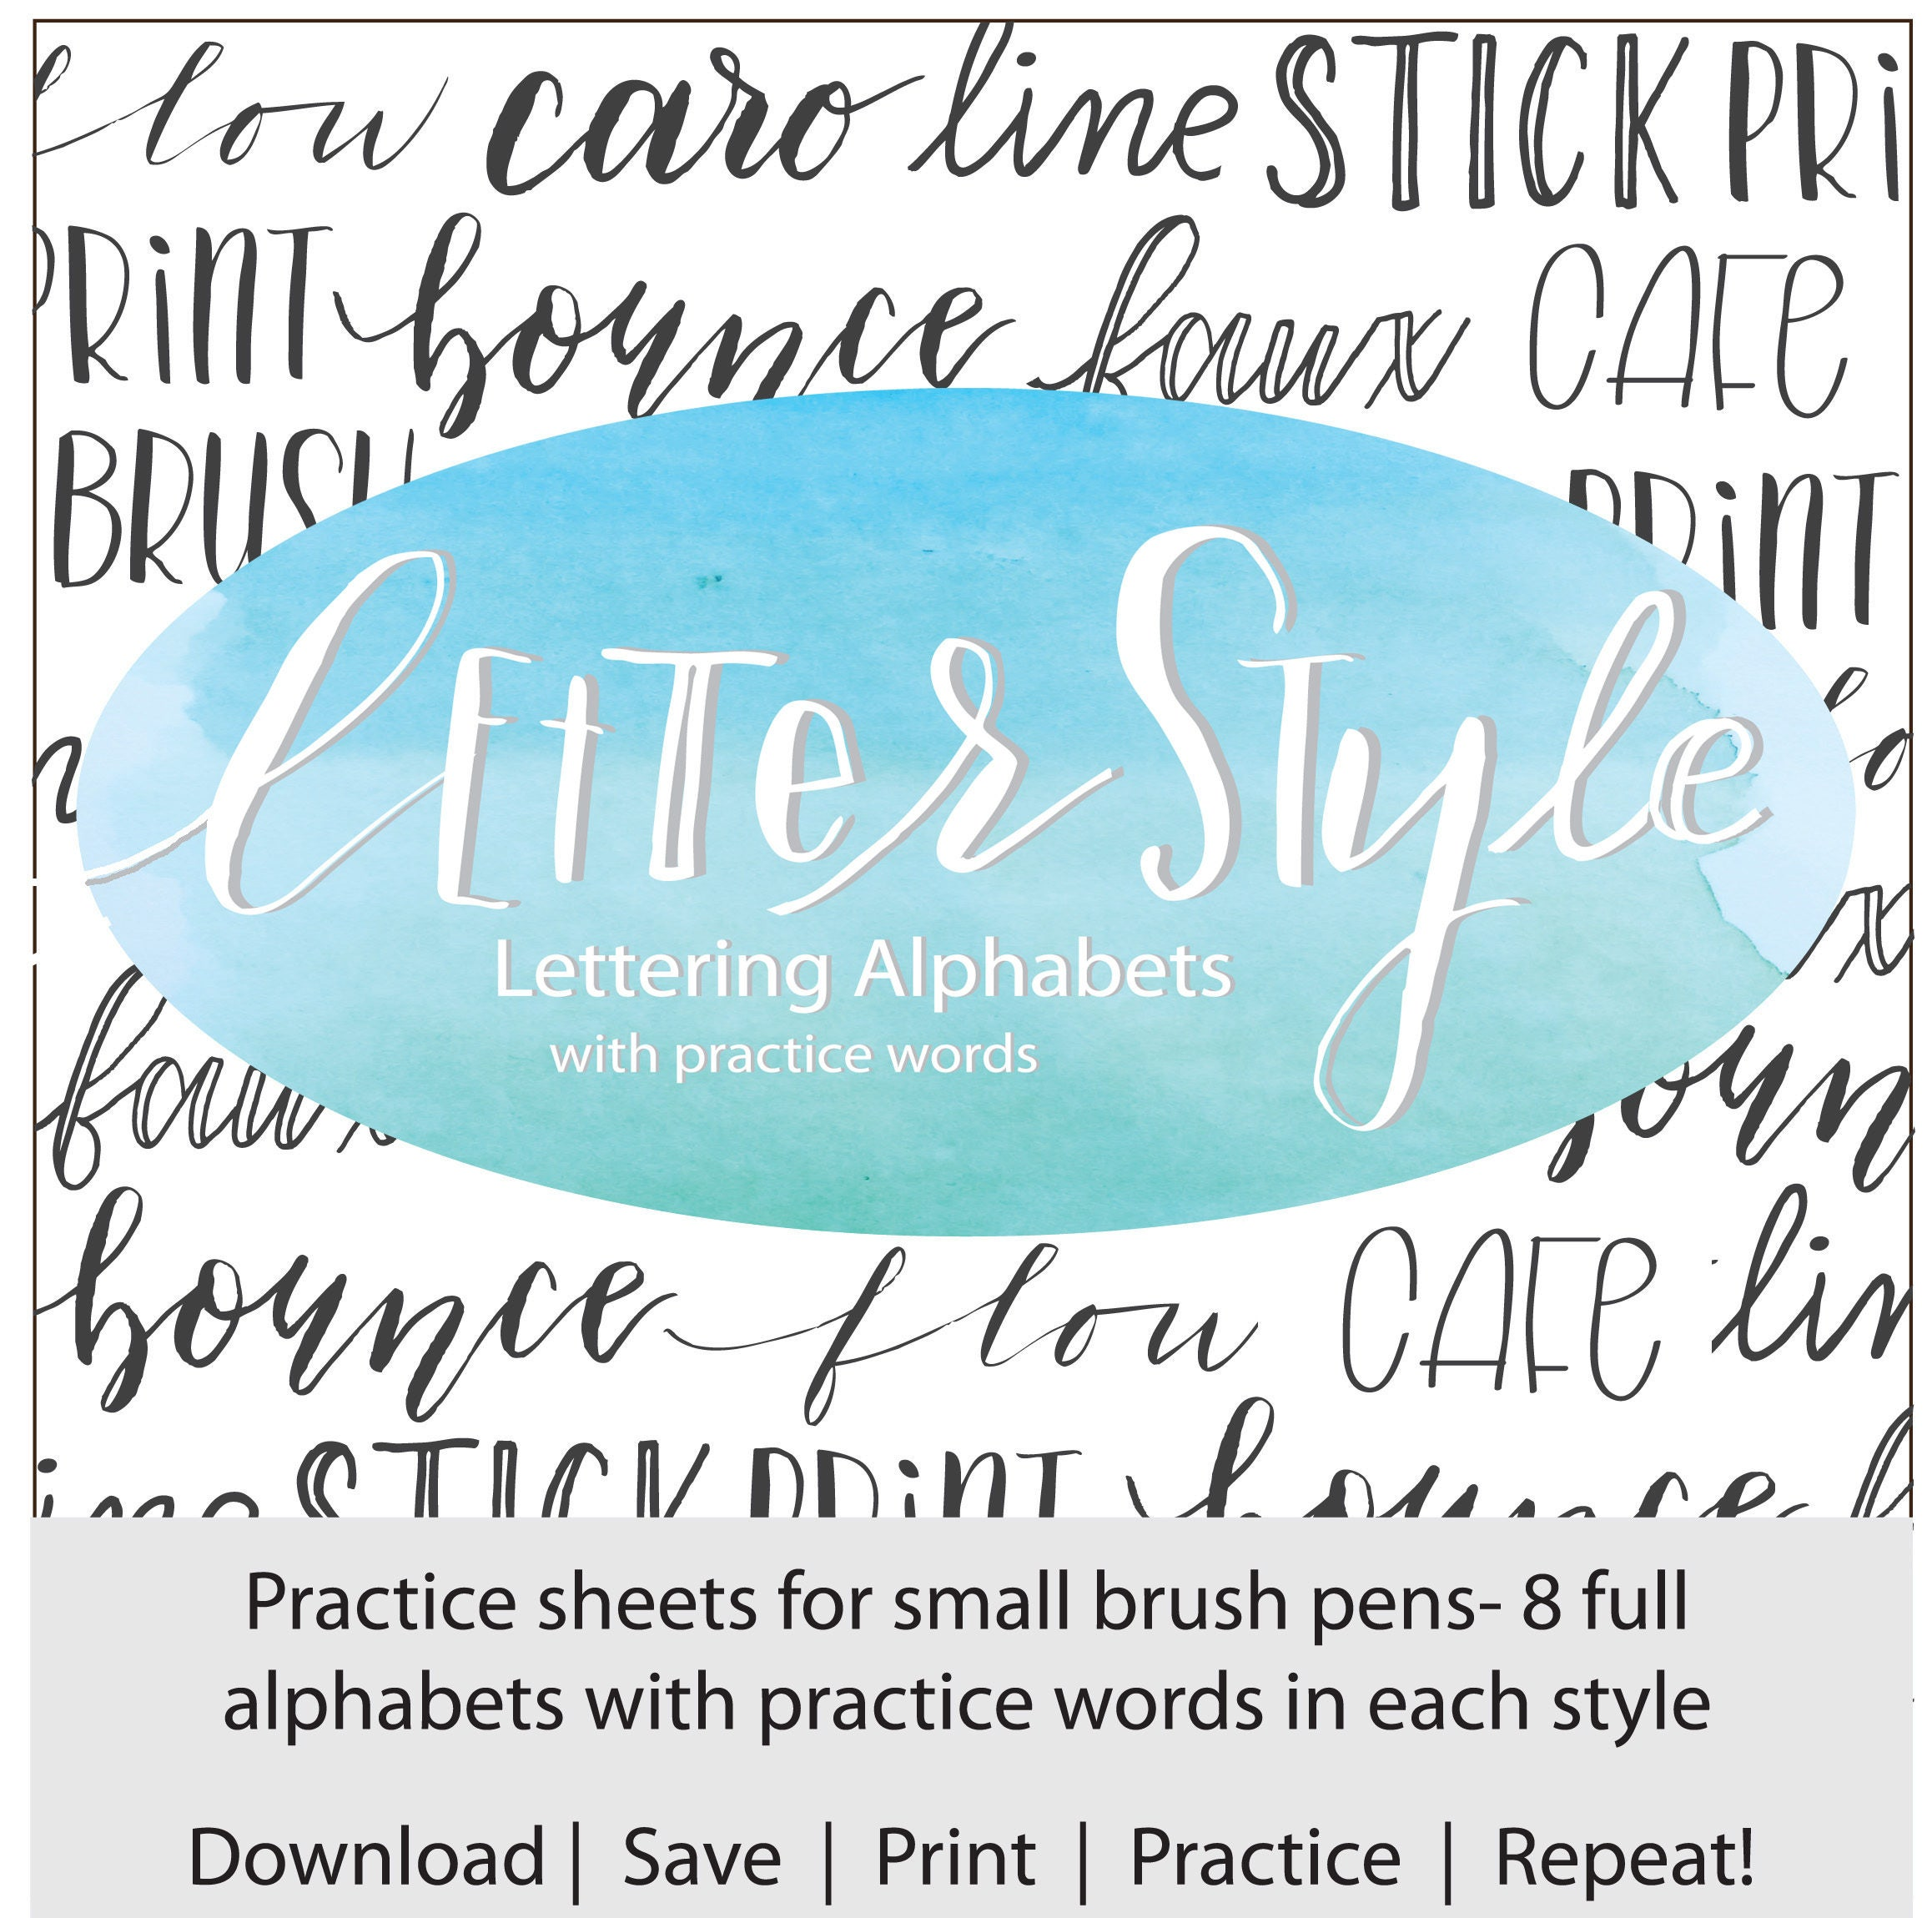 Letter style lettering alphabets with practice words